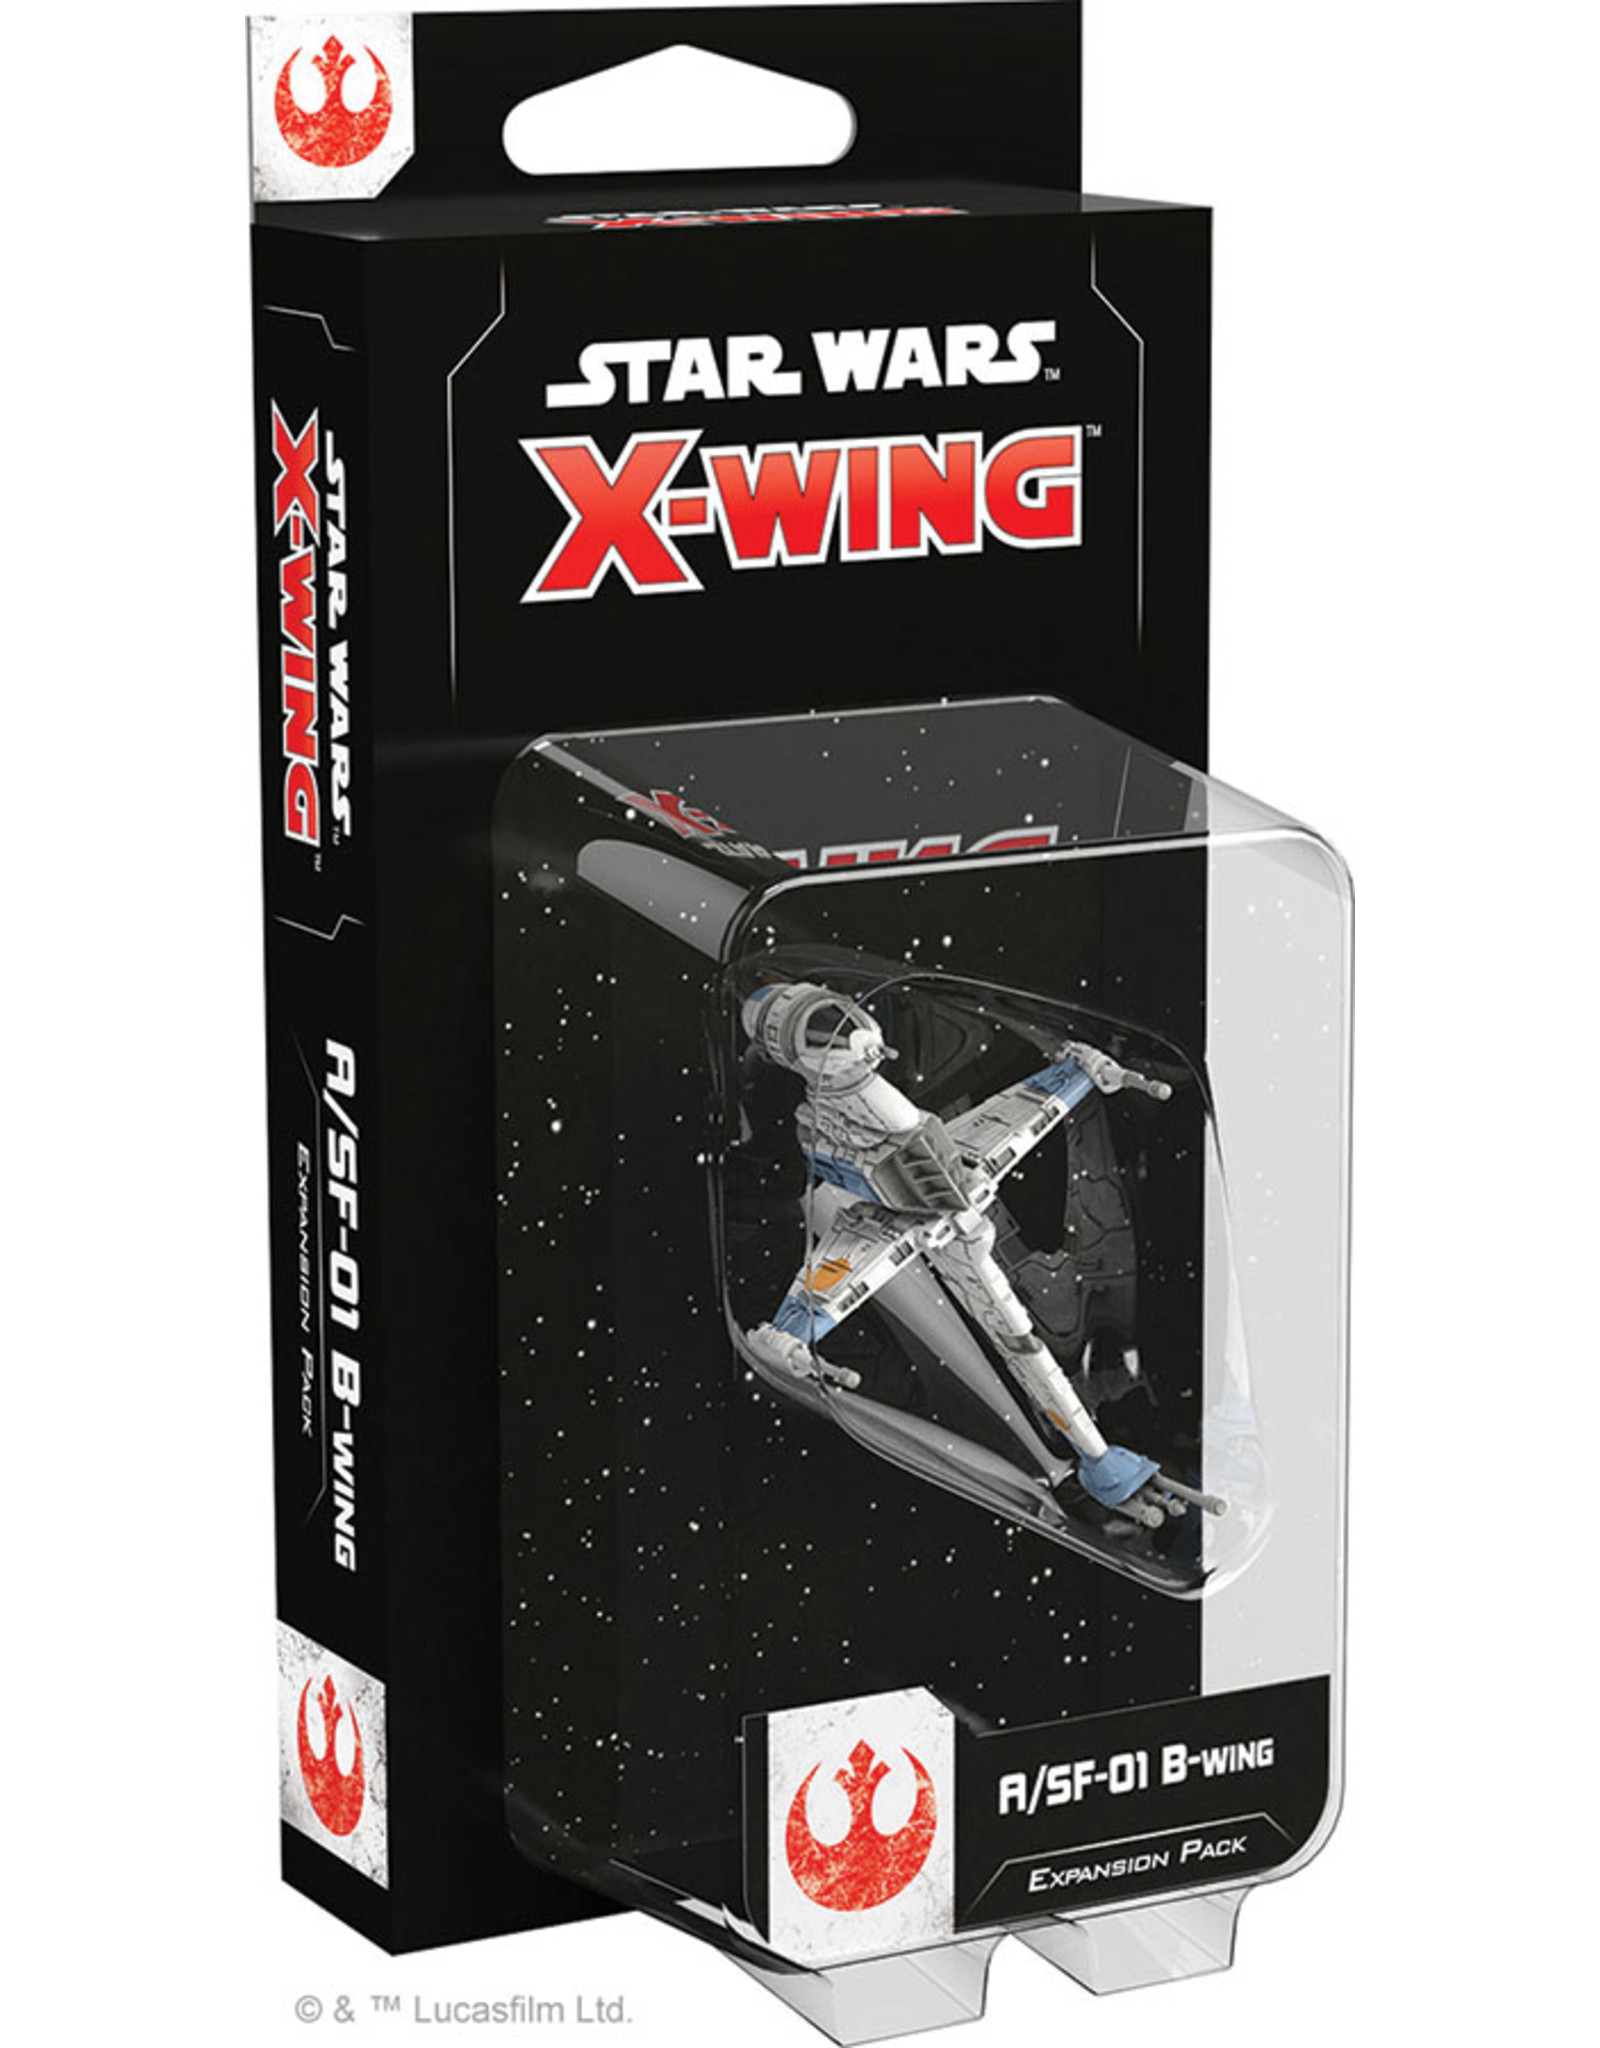 Atomic Mass Games Star Wars X-Wing: 2nd Edition - A/SF-01 B-Wing Expansion Pack